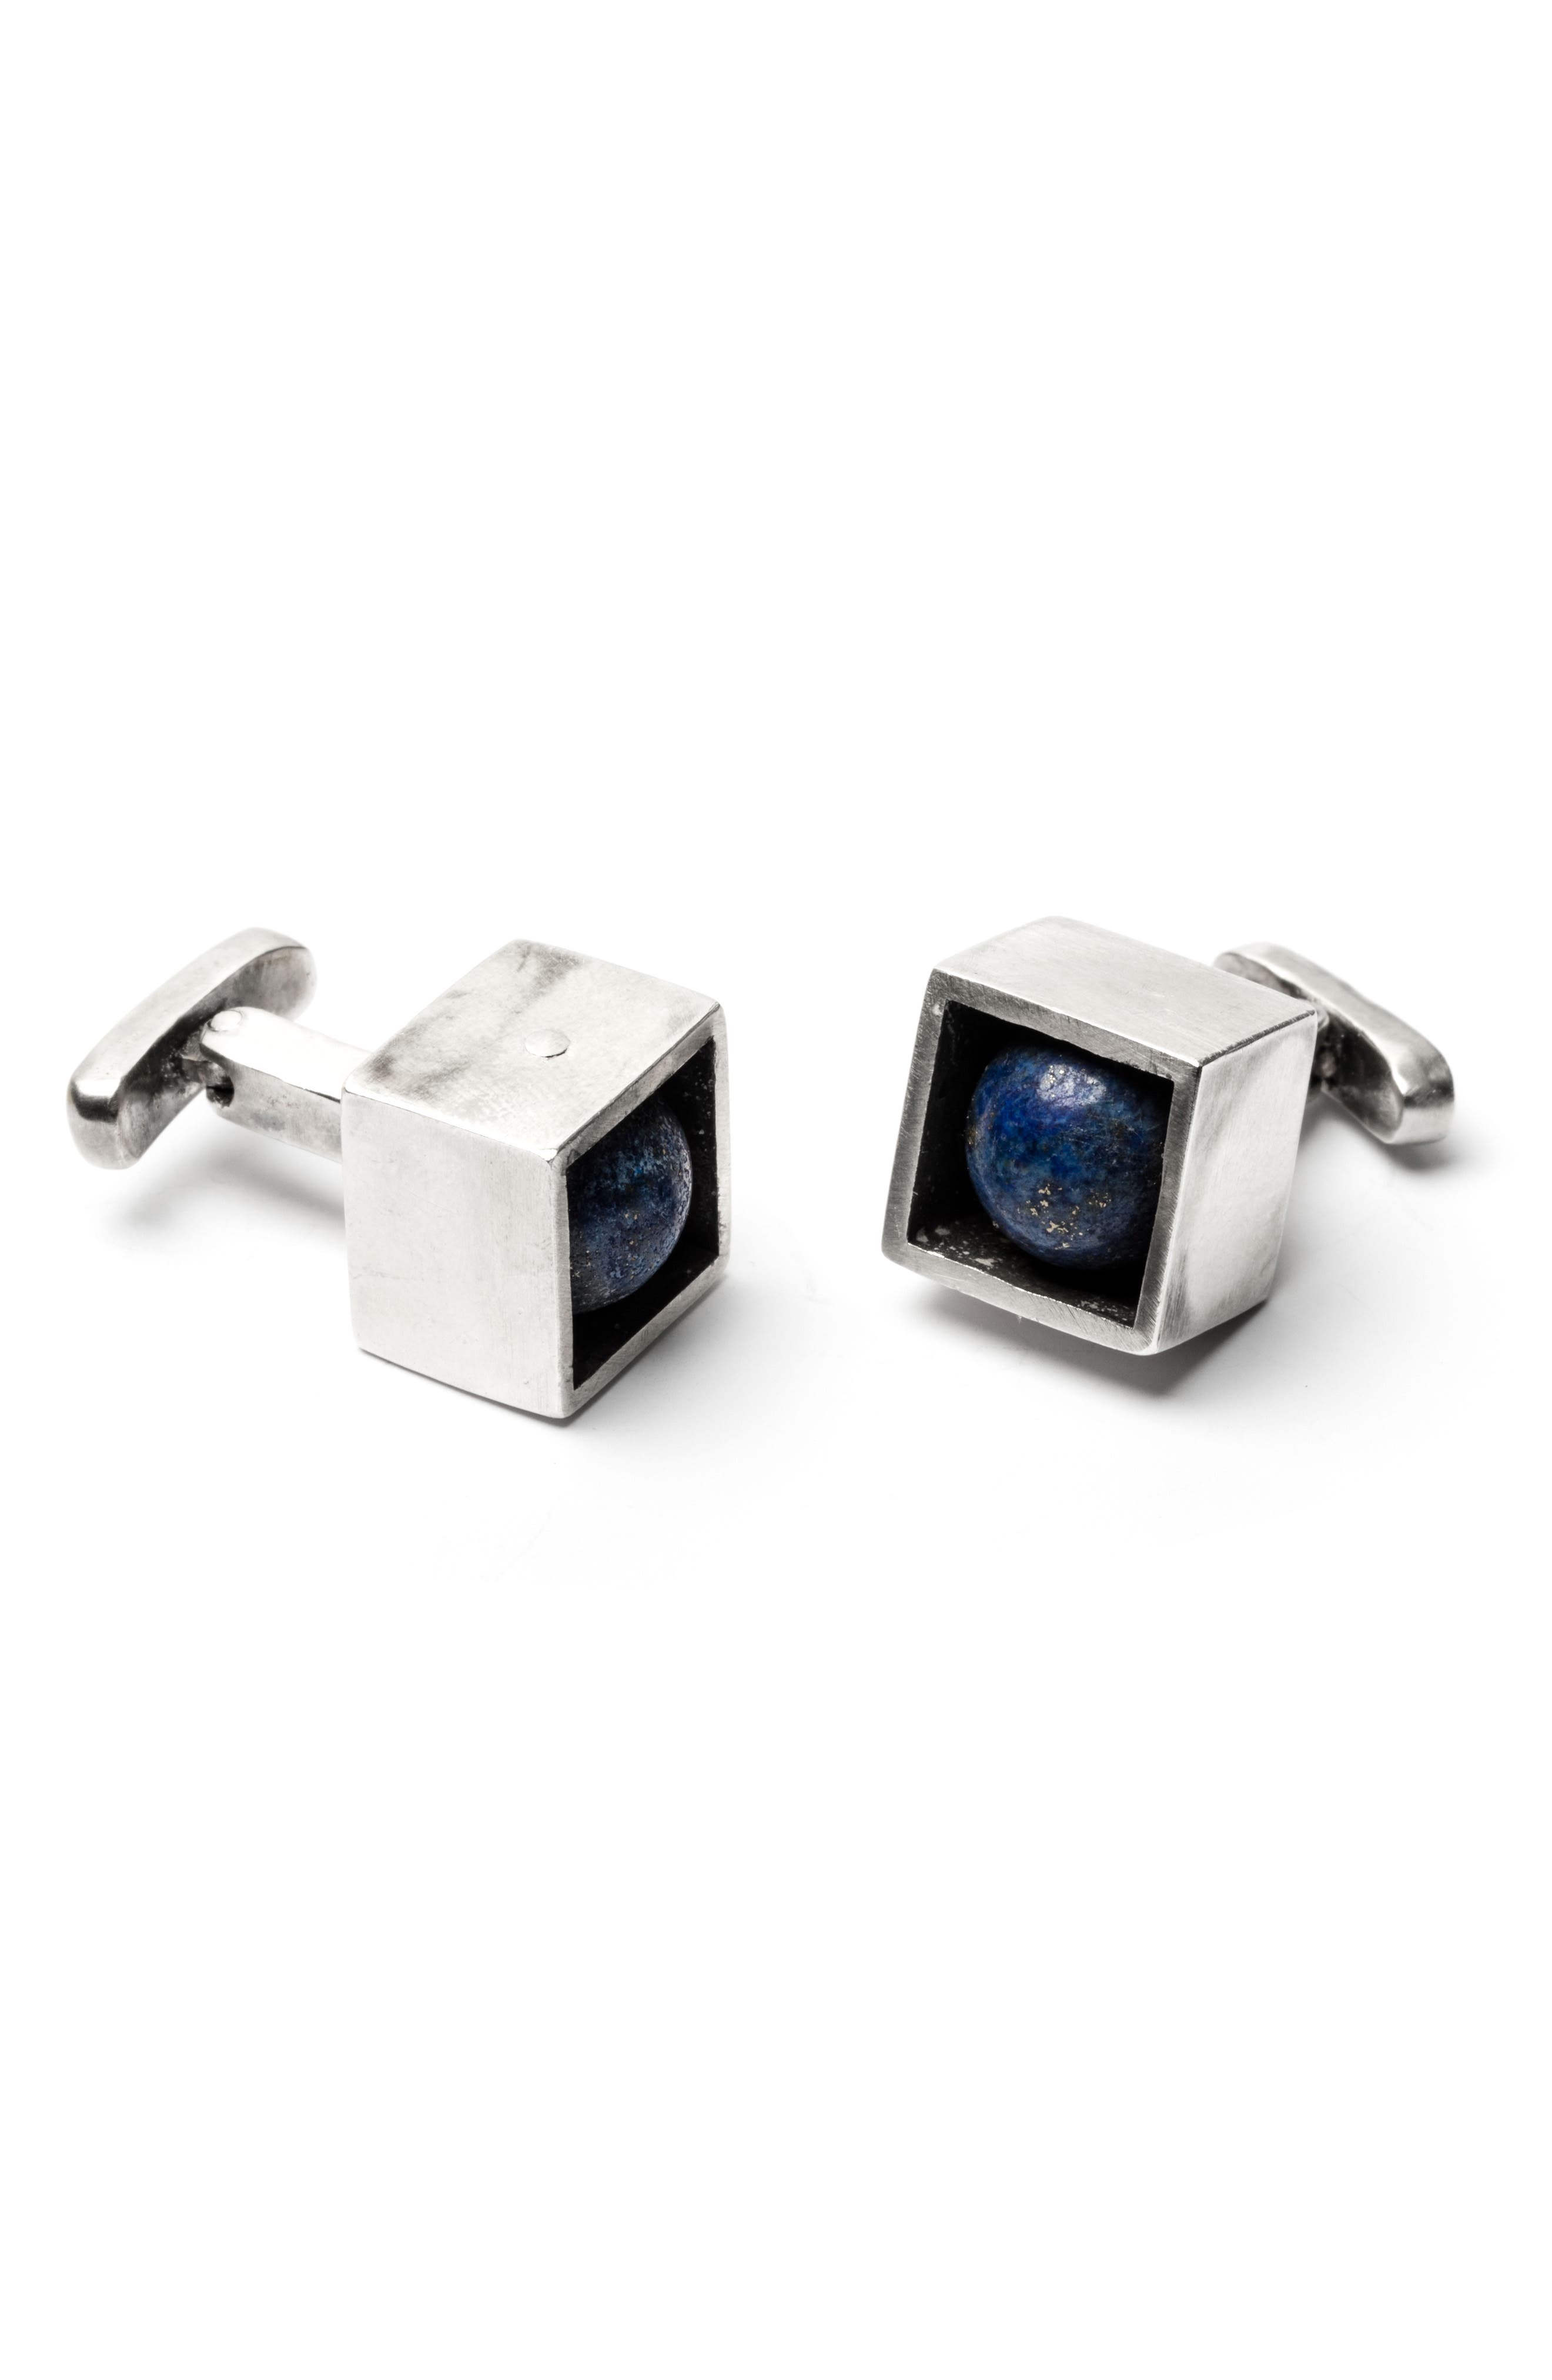 Stone in Cube Cuff Links,                         Main,                         color, Silver